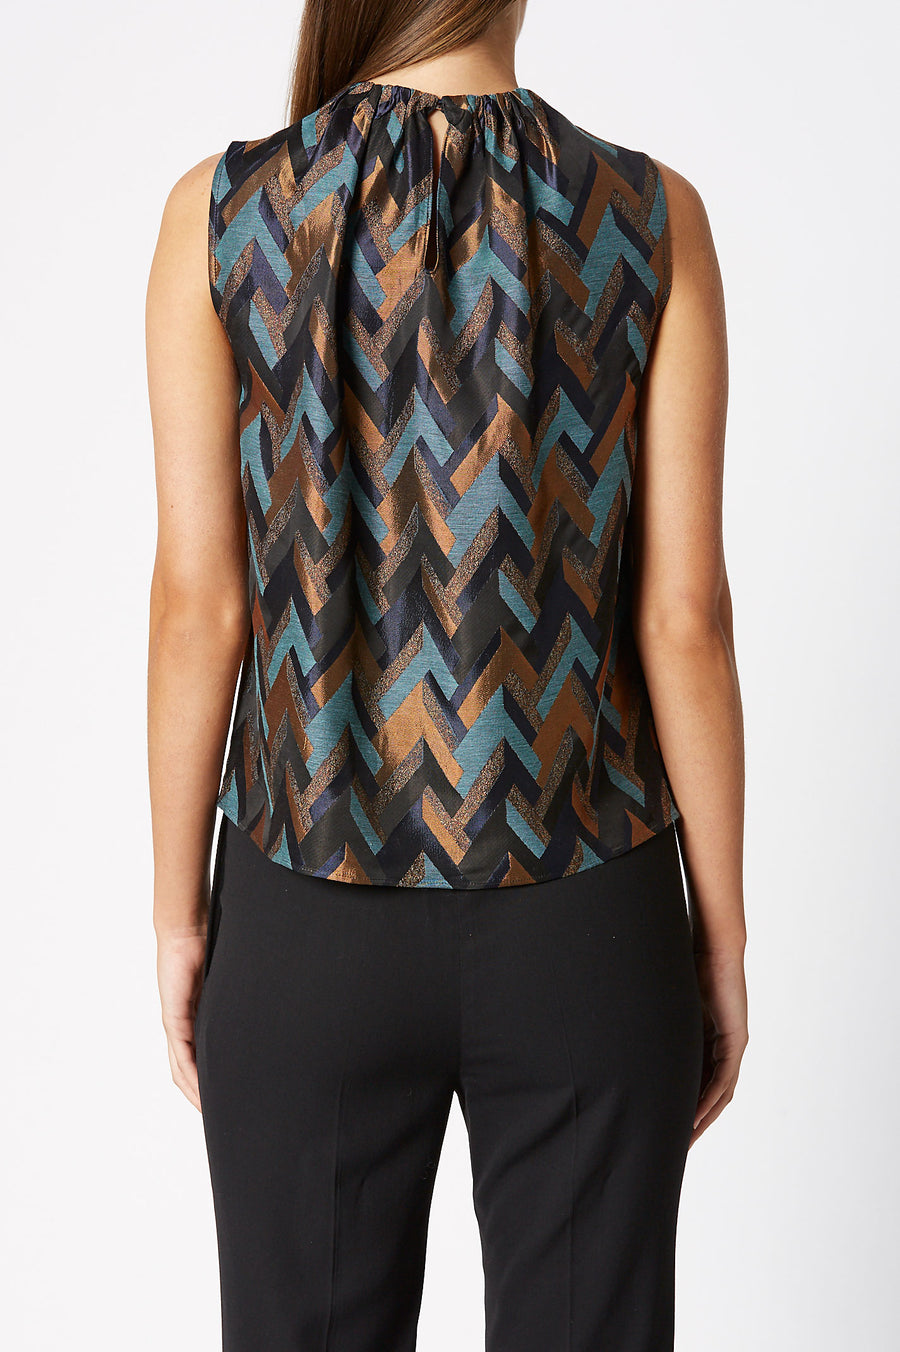 Jacquard Tank is a loosely cut tank with gathered neckline detail, color copper